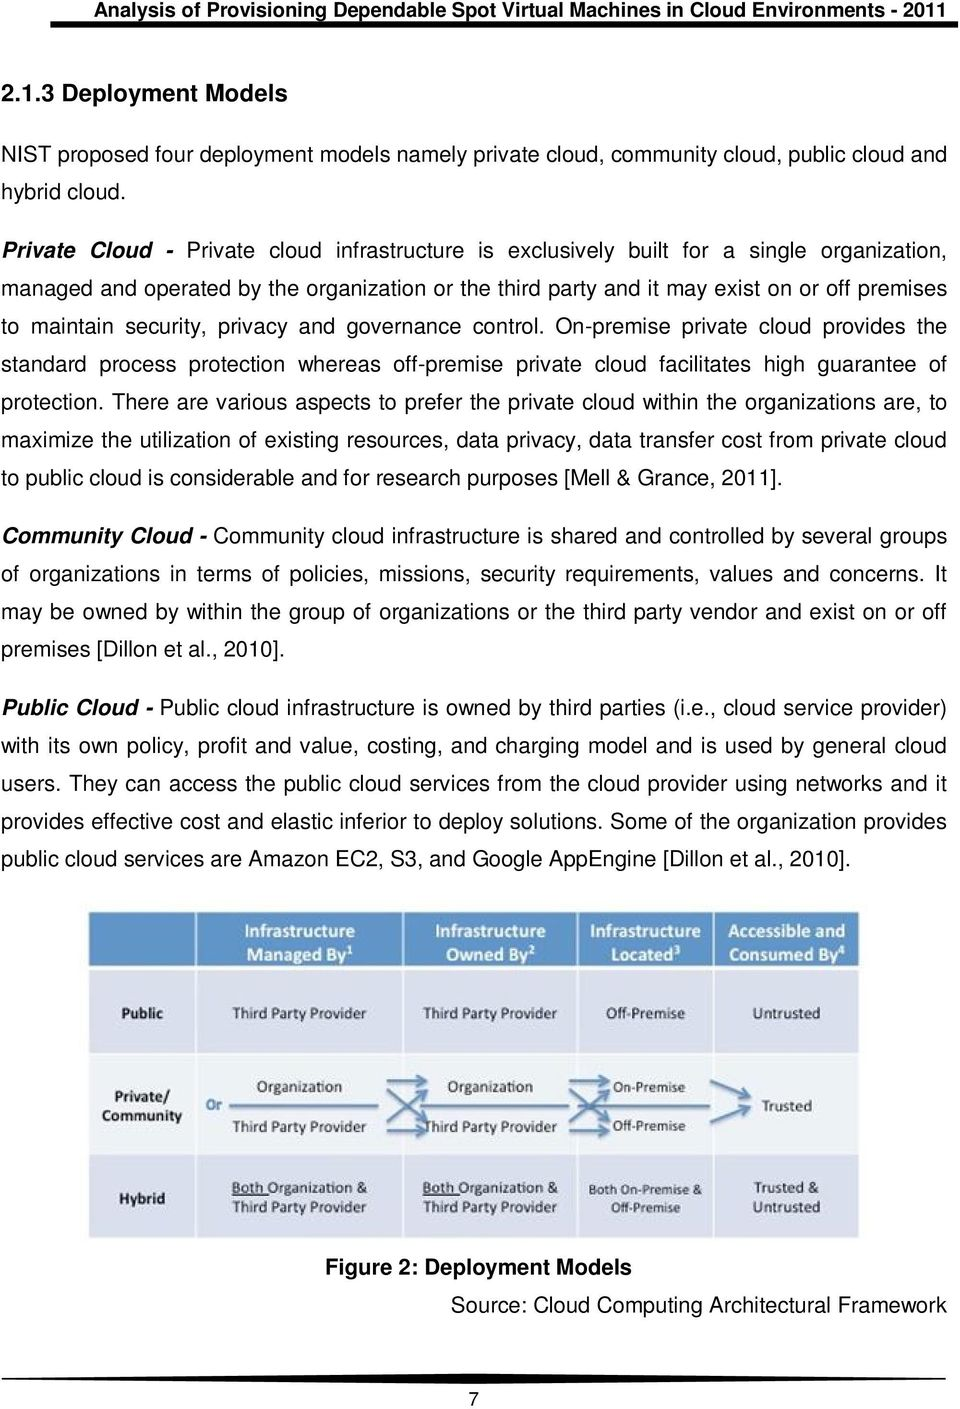 maintain security, privacy and governance control. On-premise private cloud provides the standard process protection whereas off-premise private cloud facilitates high guarantee of protection.